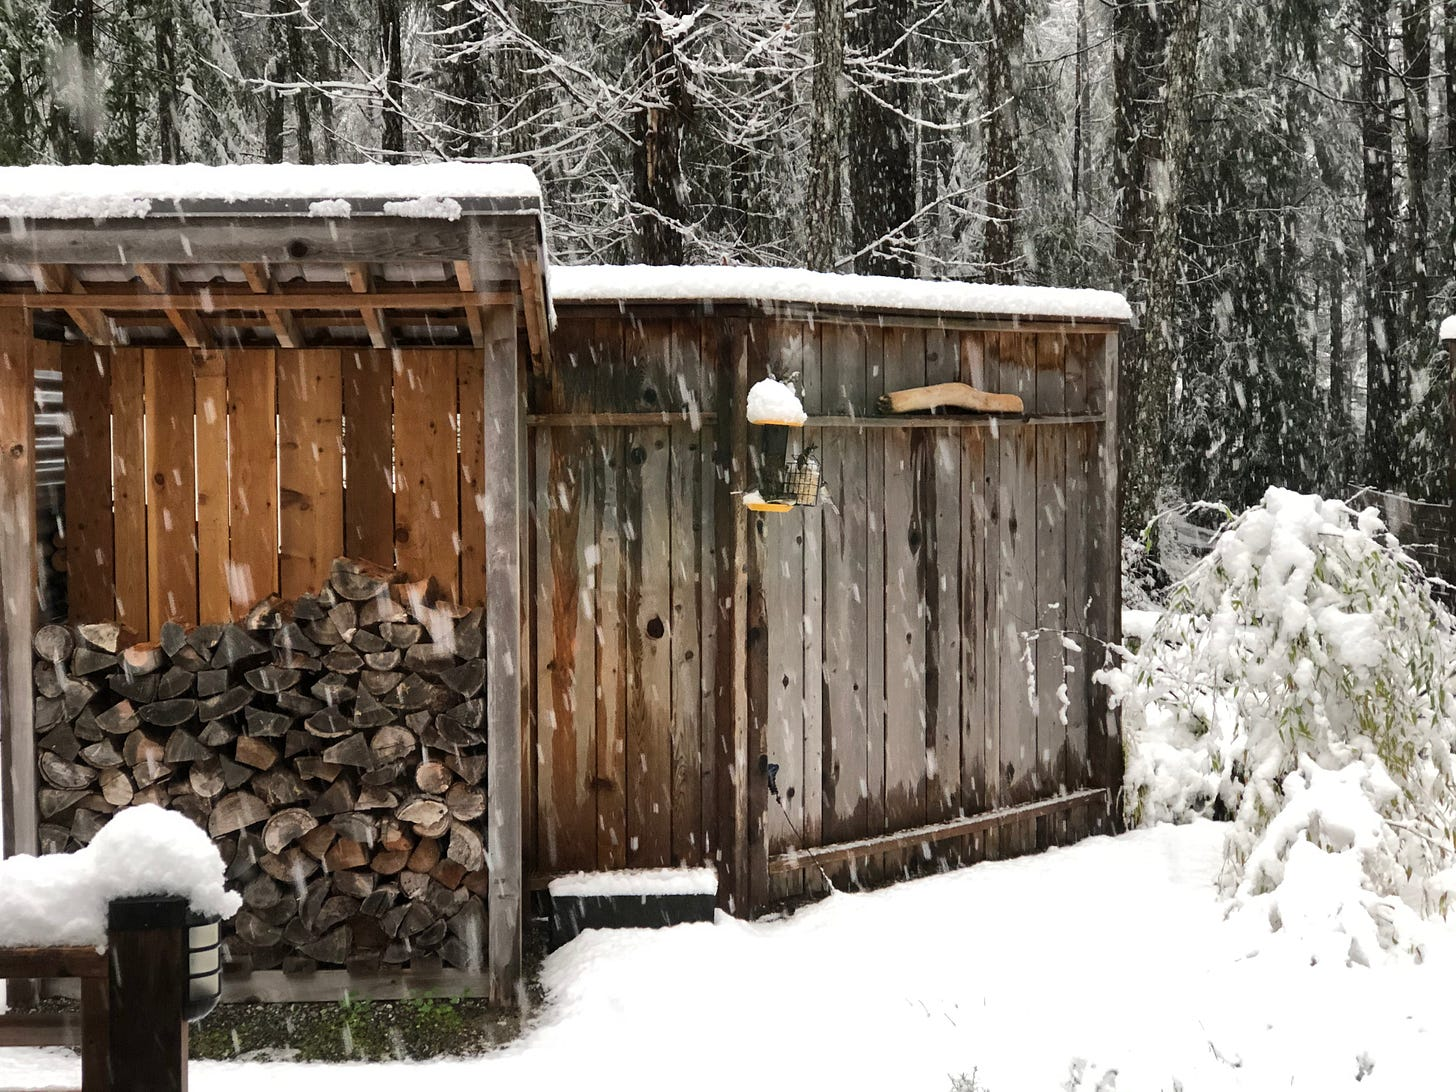 Wood shed and bird feeder on a winter morning, snow bends the bamboo to the ground